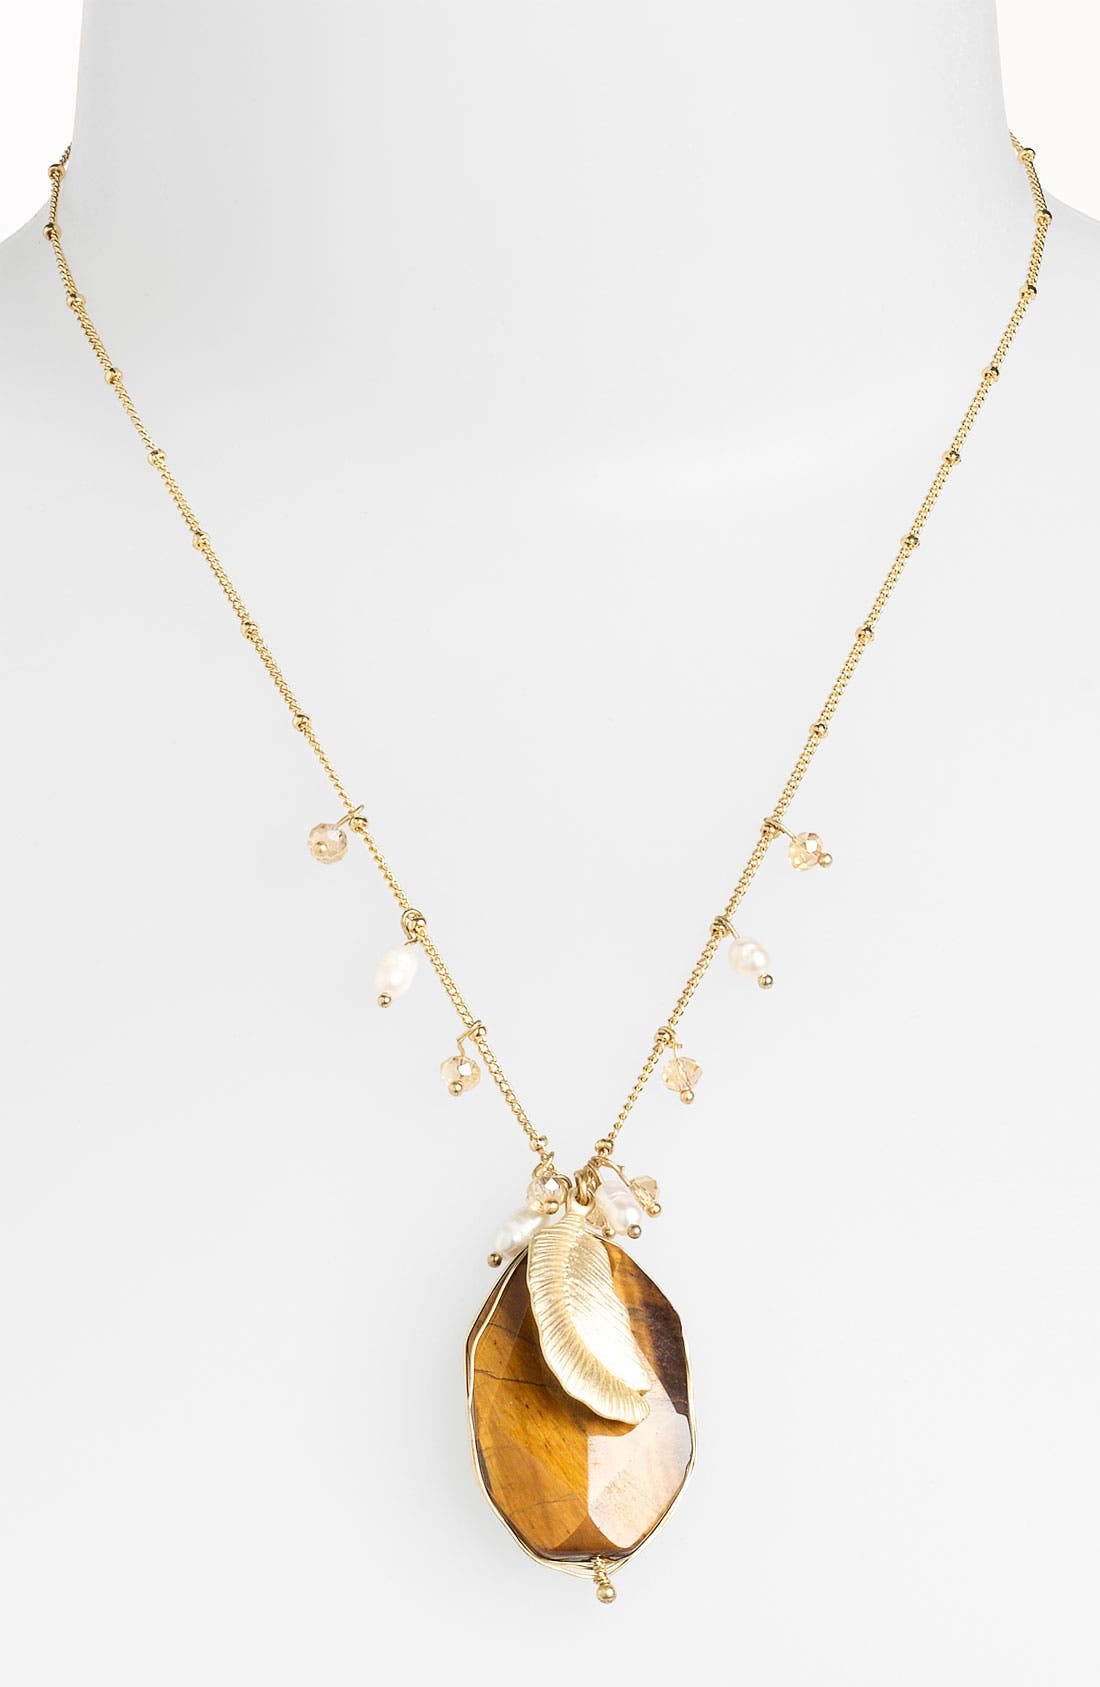 Main Image - Cara Accessories Semiprecious Oval Pendant Necklace